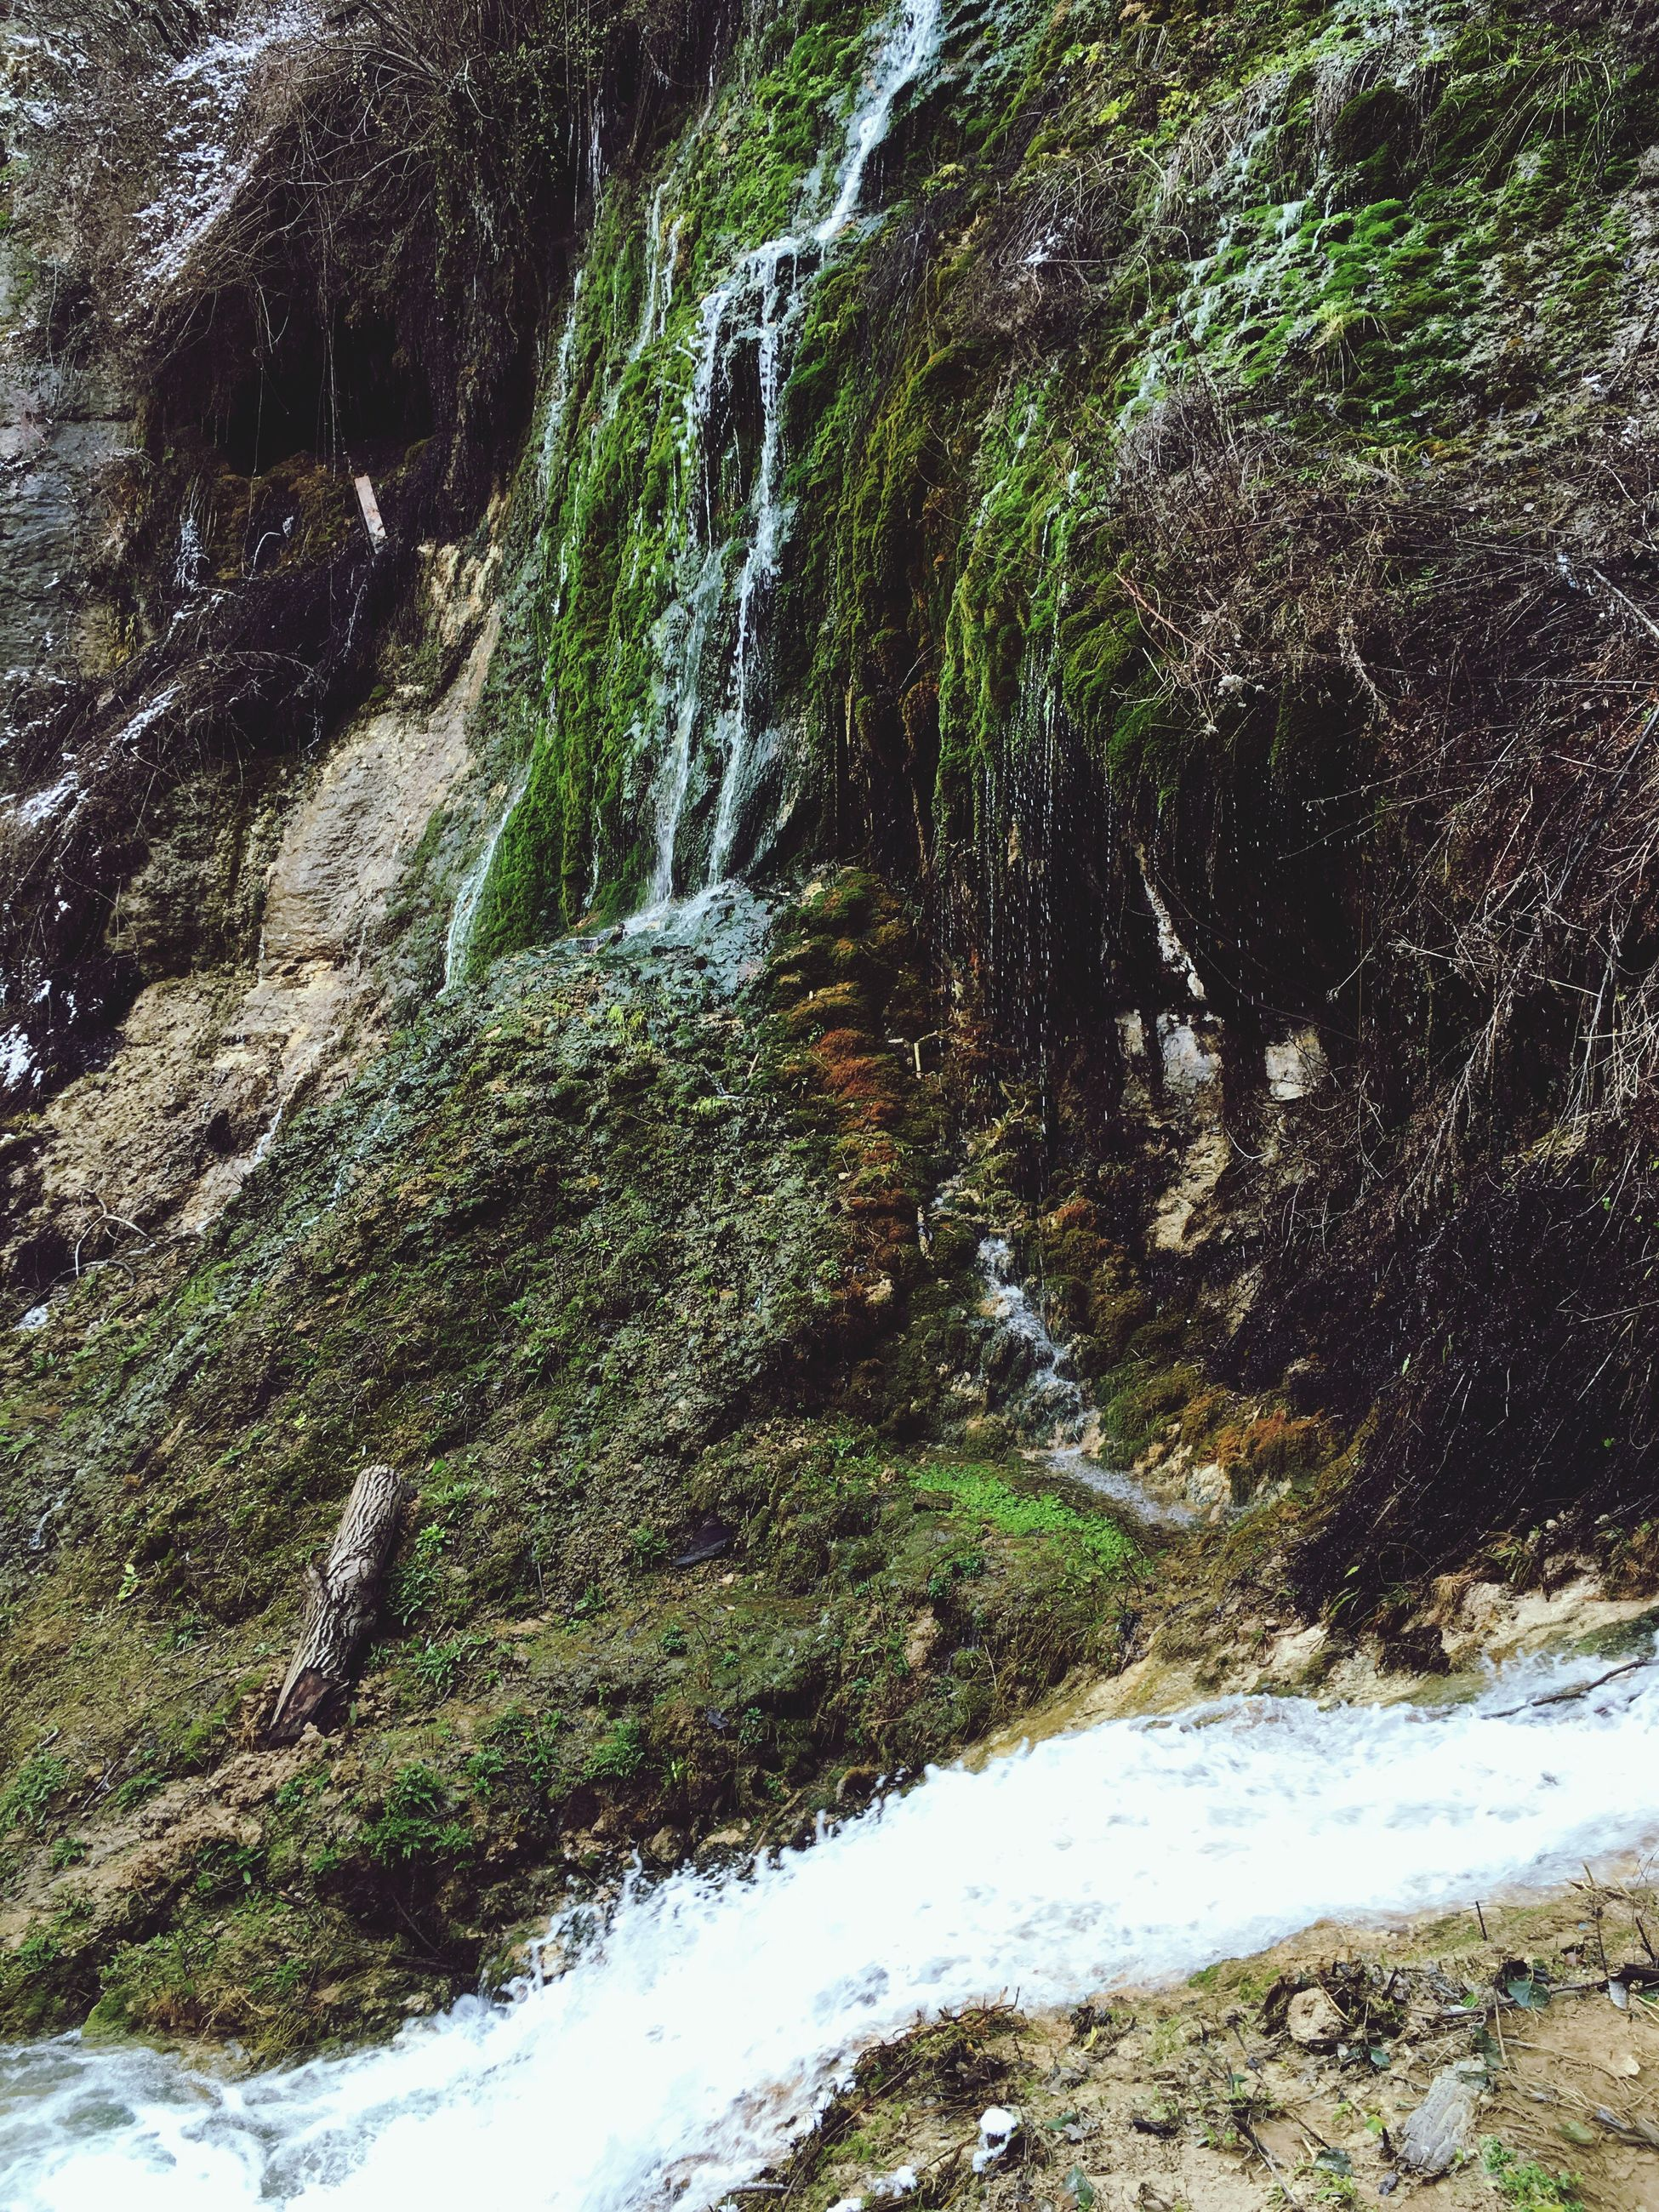 flowing water, water, waterfall, nature, tree, motion, growth, beauty in nature, plant, flowing, rock - object, forest, scenics, stream, green color, moss, tranquility, day, outdoors, no people